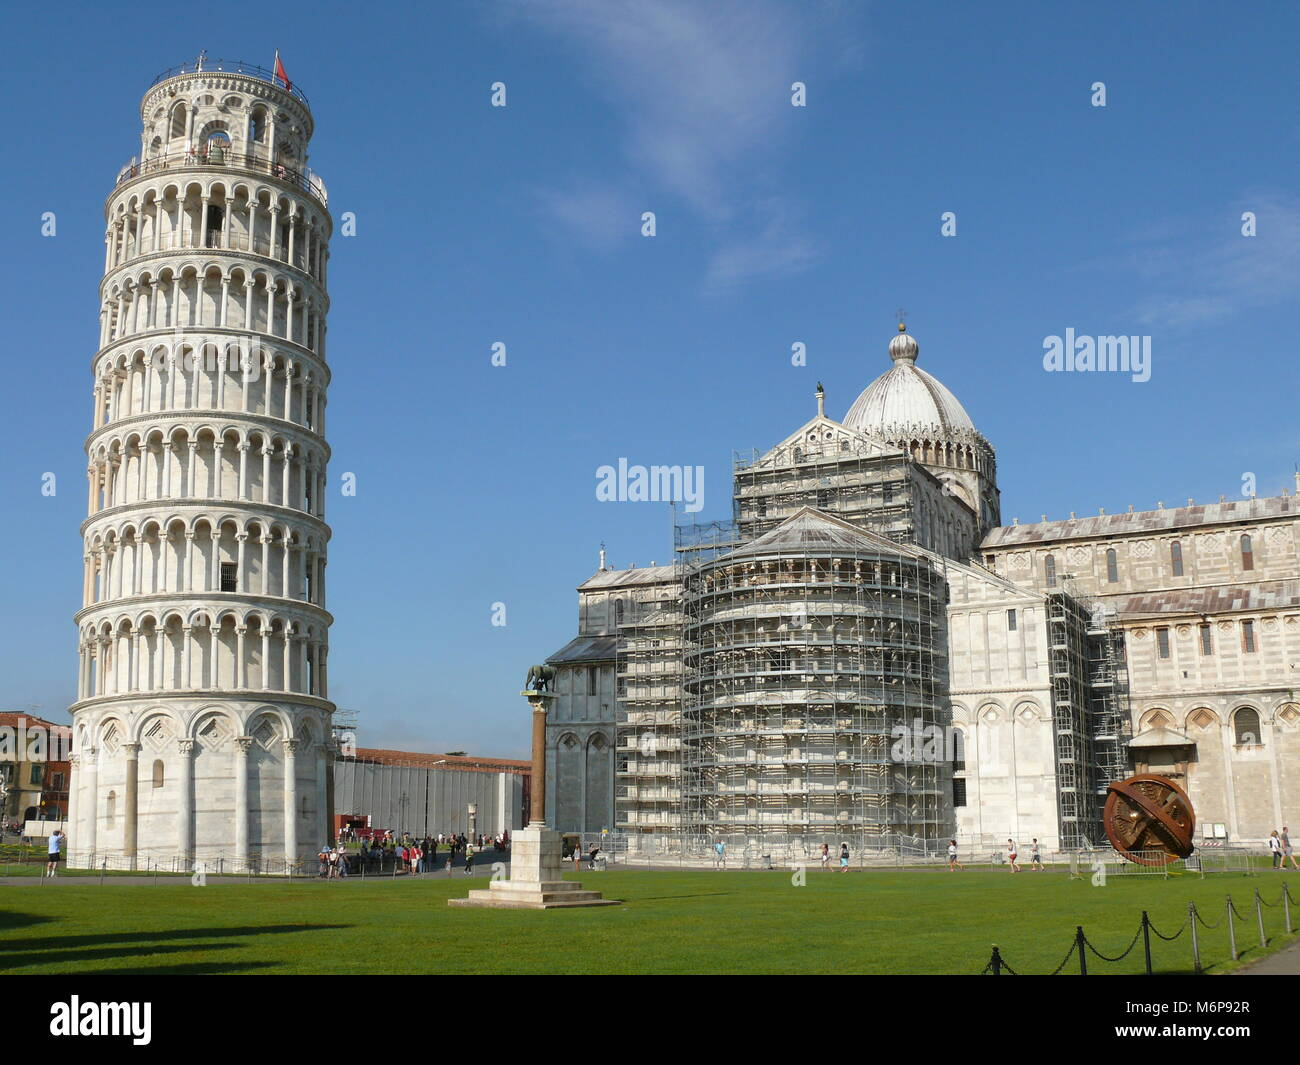 Pisa, Italy, august 2, 2014: The leaning tower and Pisa Cathedral in The square of Miracles Stock Photo